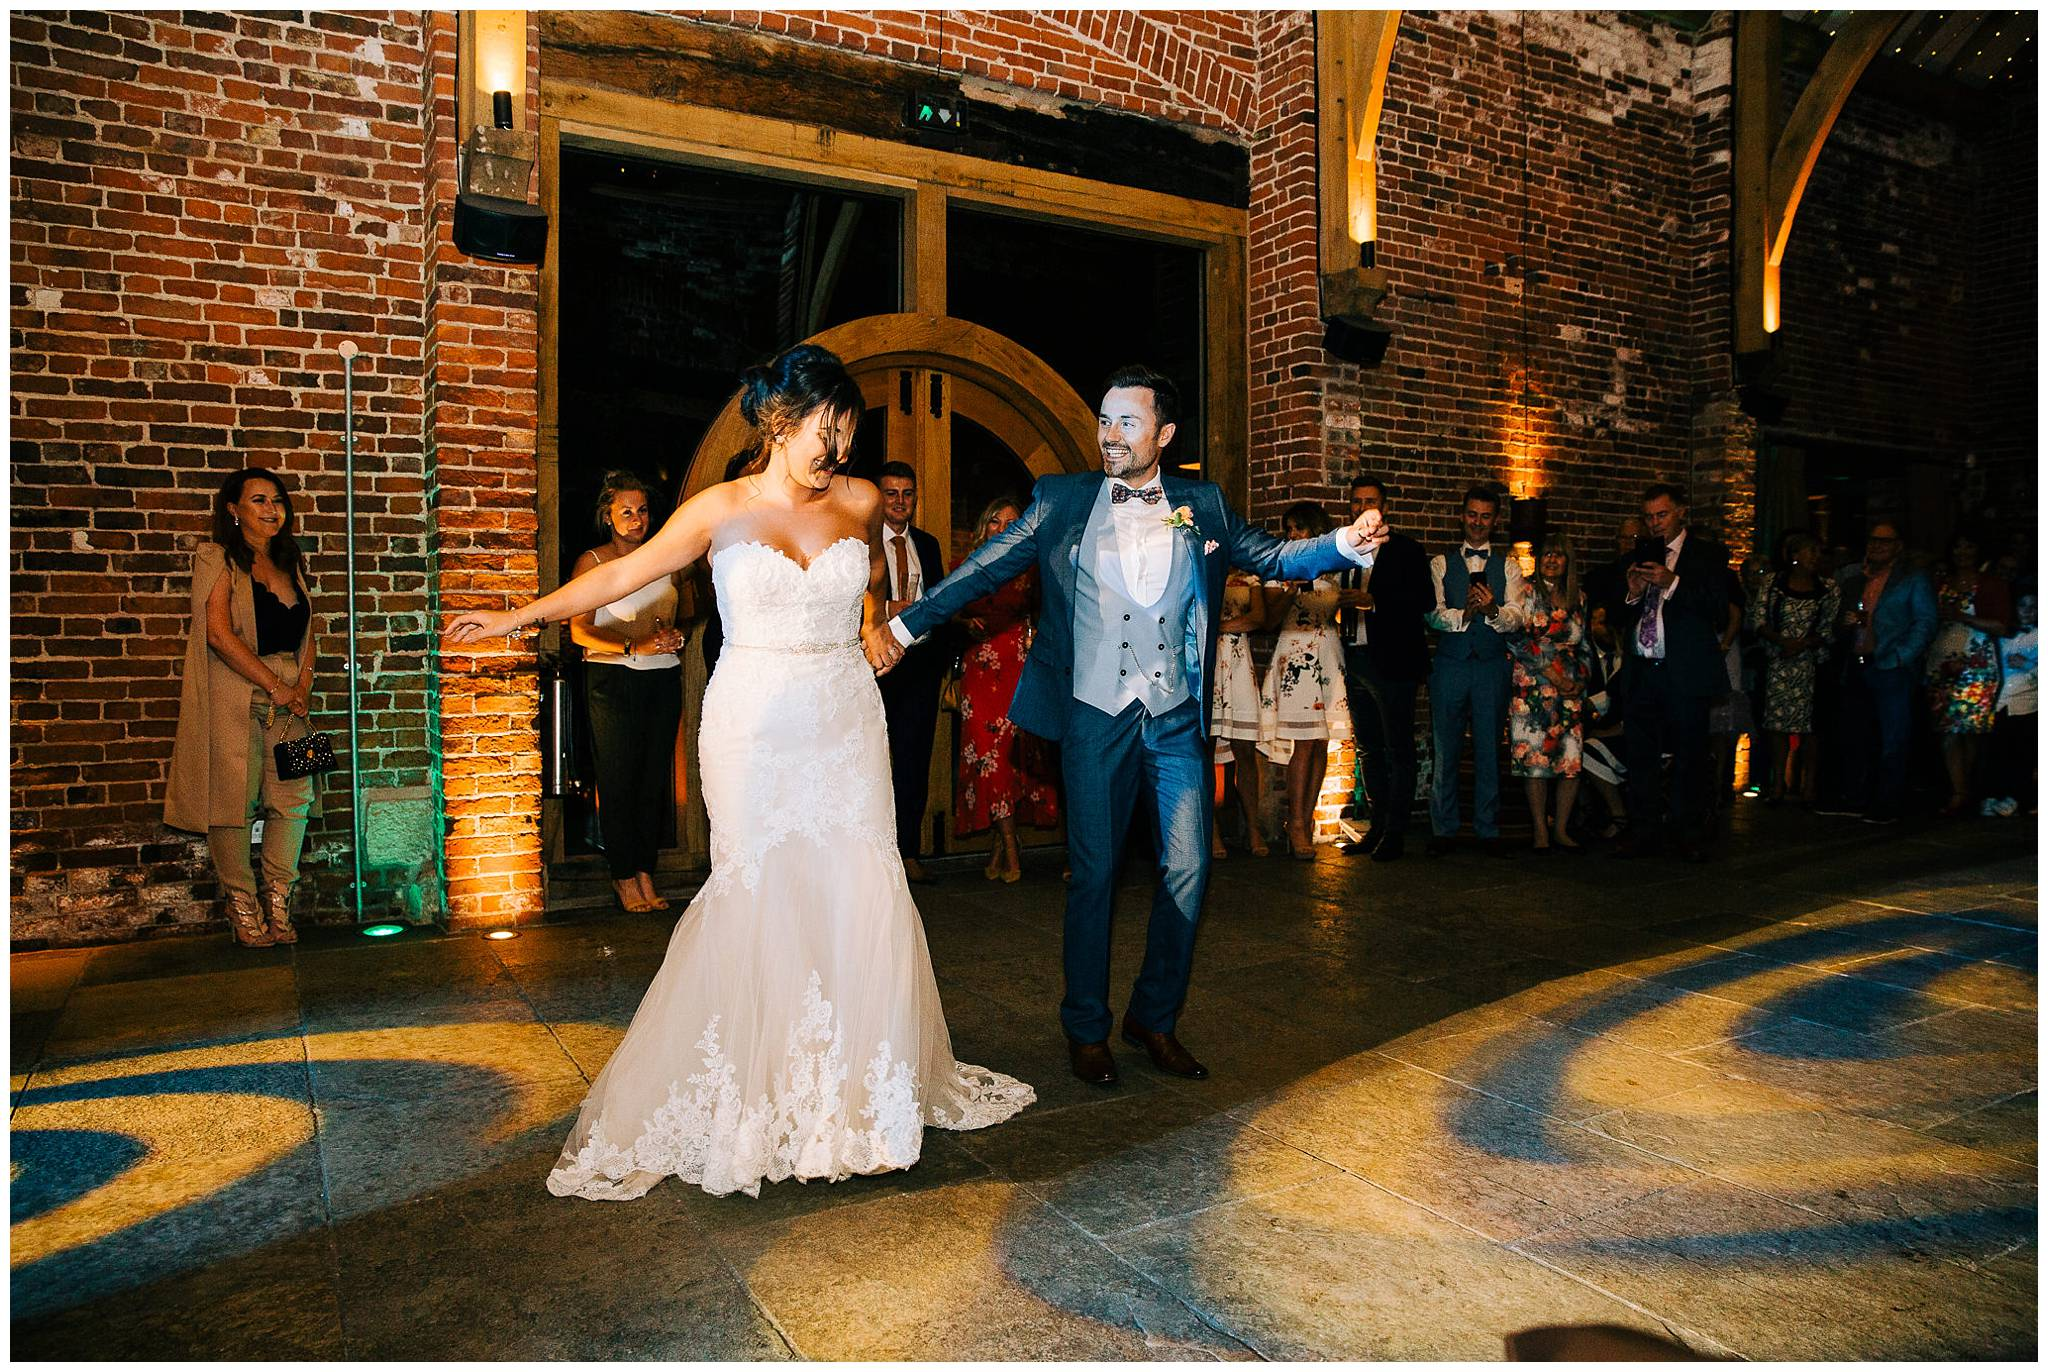 Chic Summer Wedding at Hazel Gap Barn - Nottinghamshire Photographer70.jpg